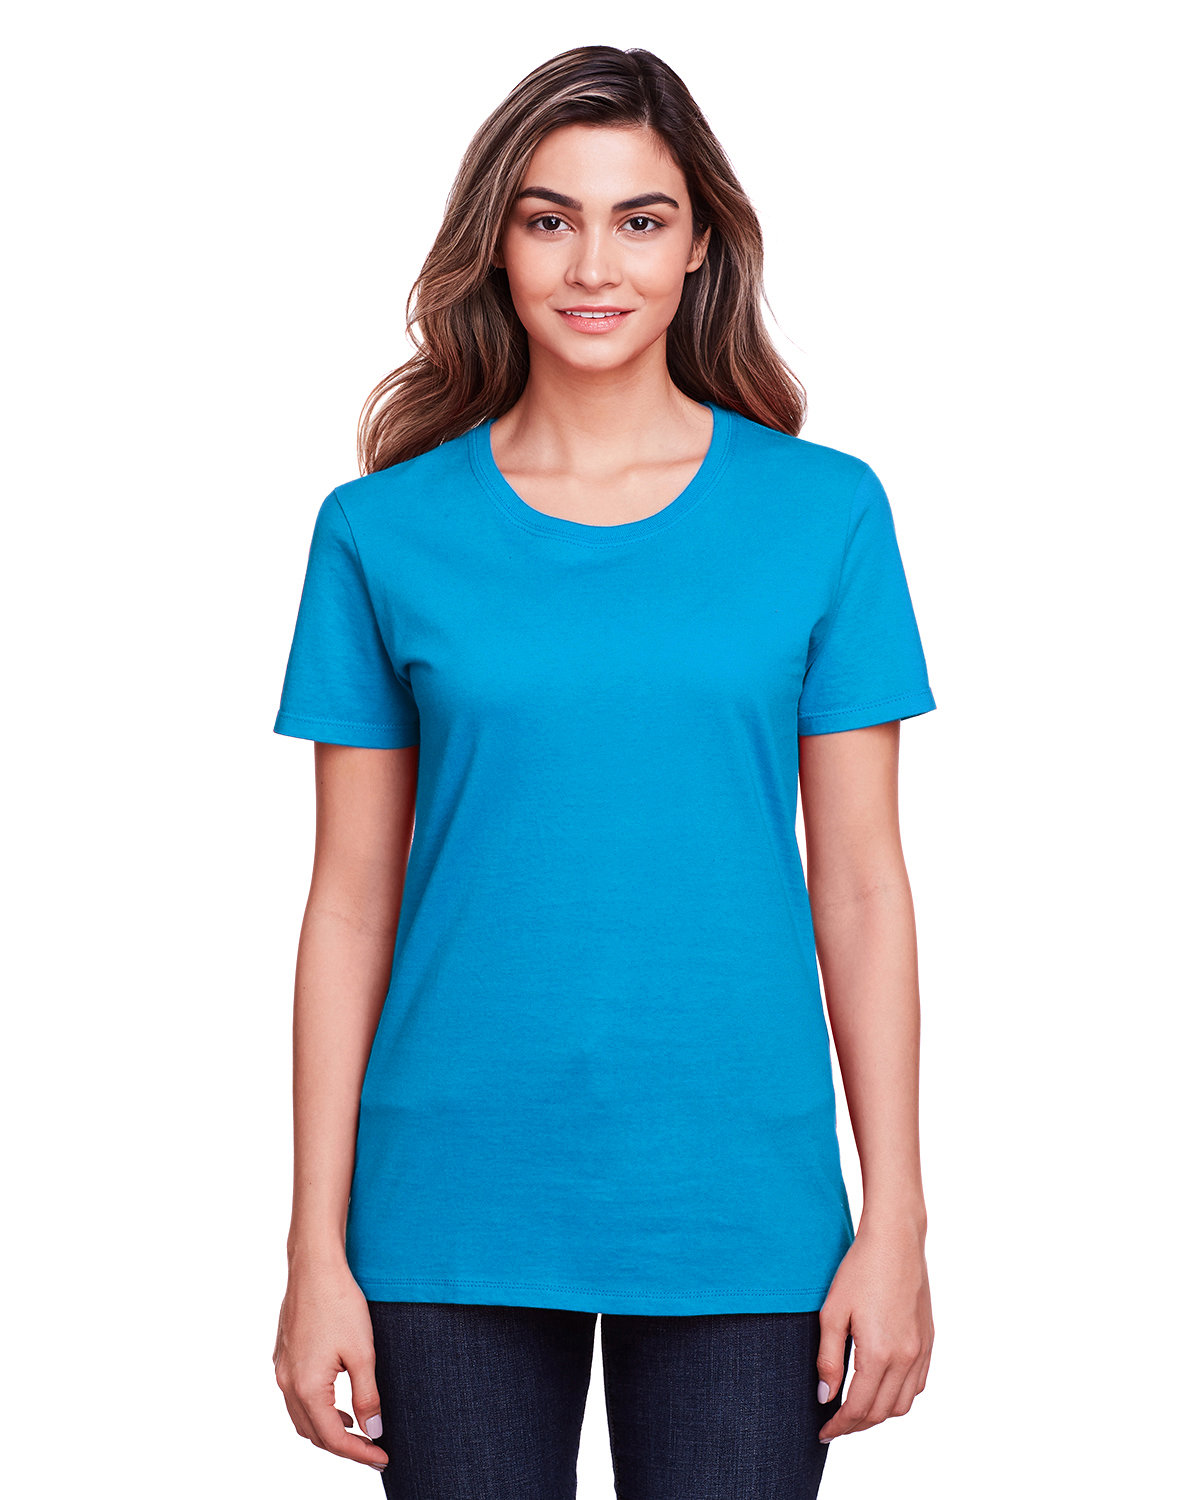 Fruit of the Loom Ladies' ICONIC™ T-Shirt PACIFIC BLUE